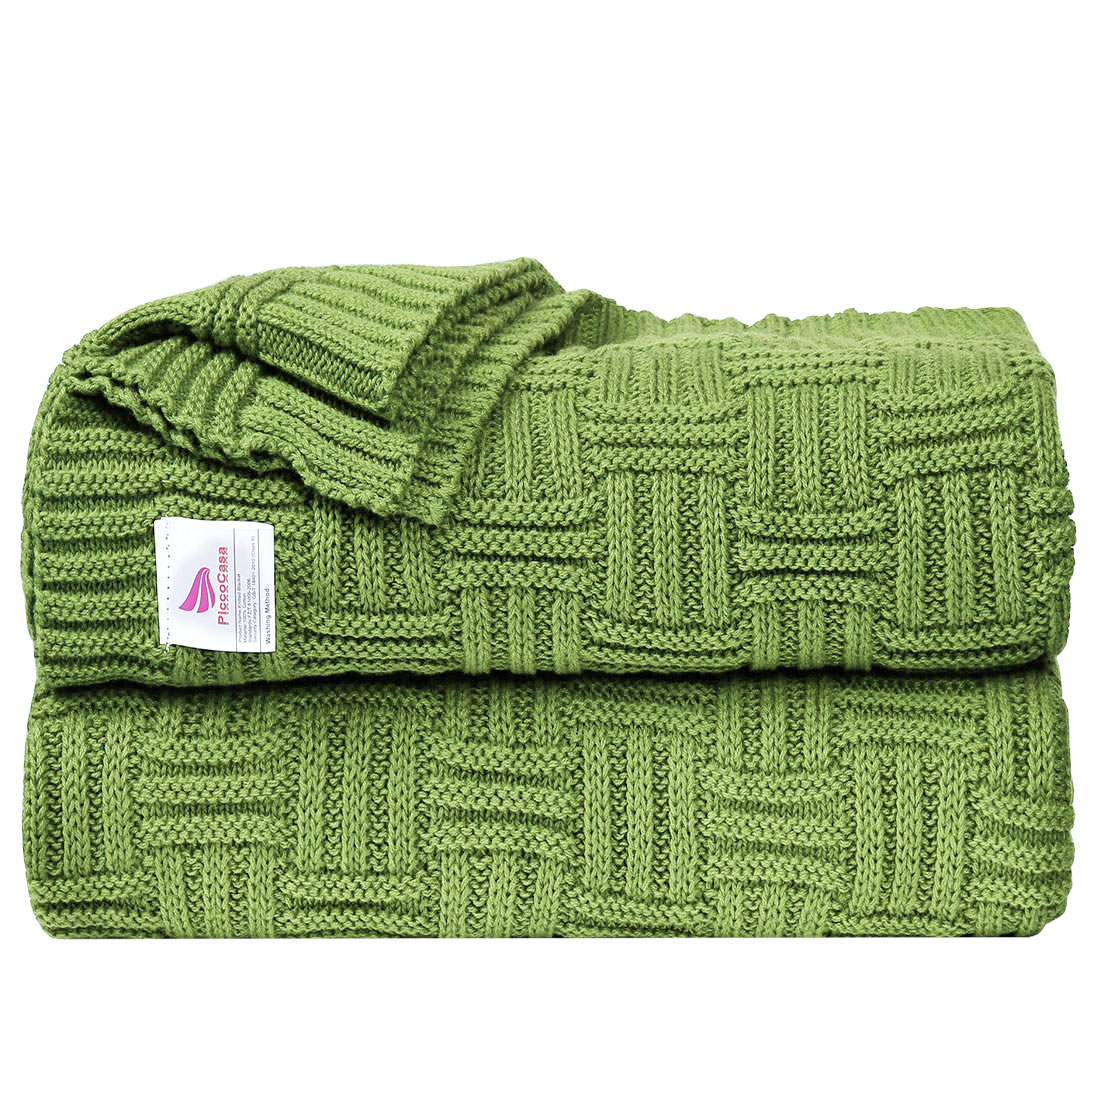 100% Cotton Soft Cable Knit Throw Blanket for Sofa Couch Decor Green